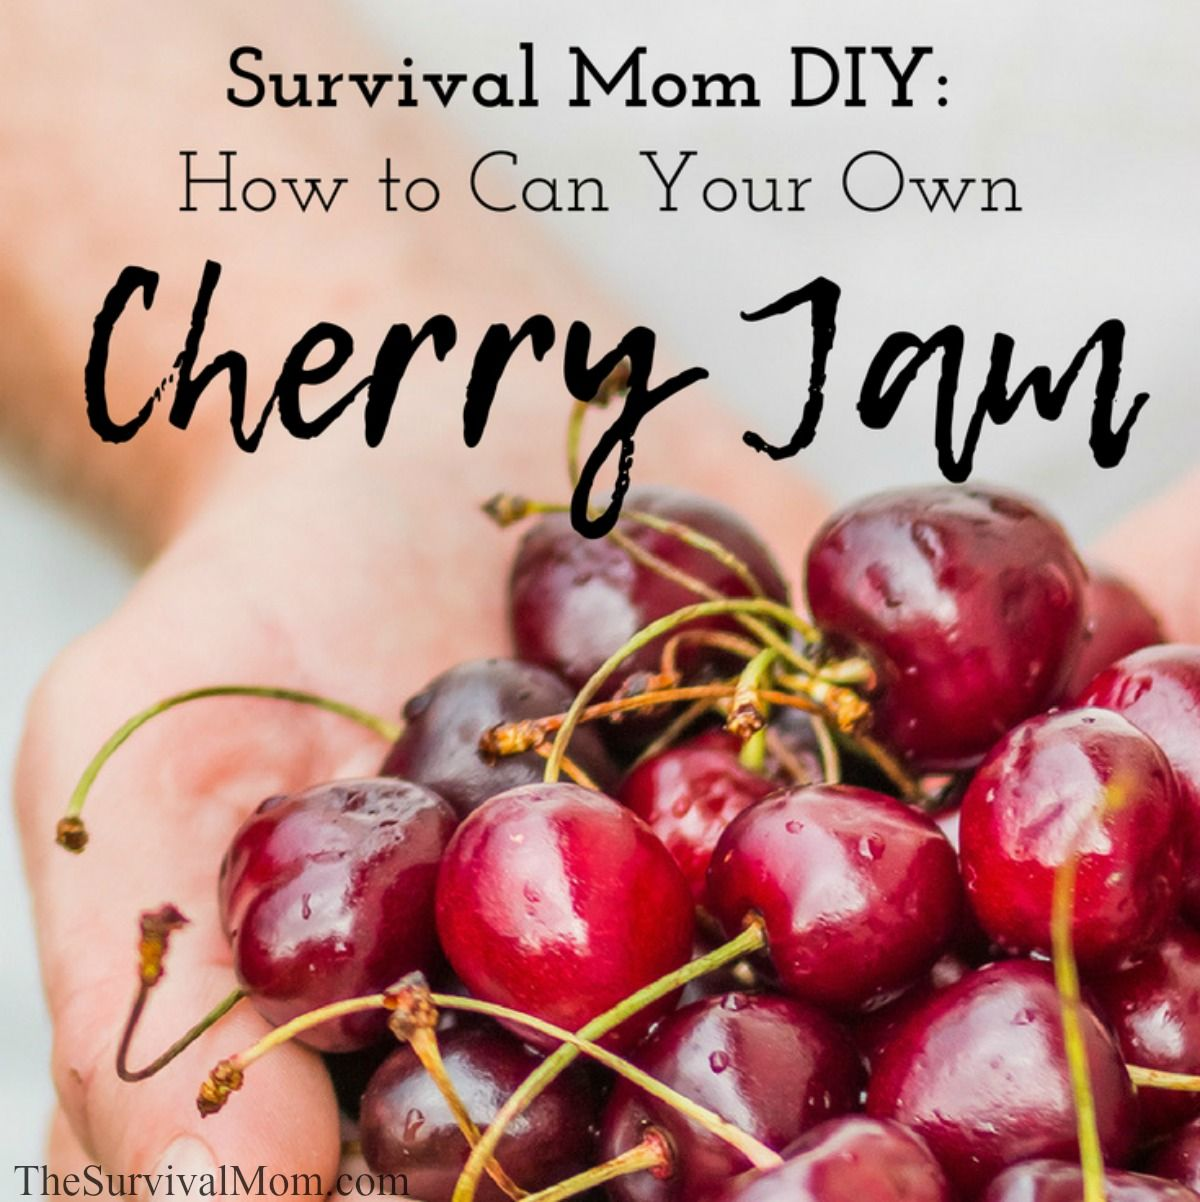 Survival Mom DIY How to Can Your Own Cherry Jam via The Survival Mom